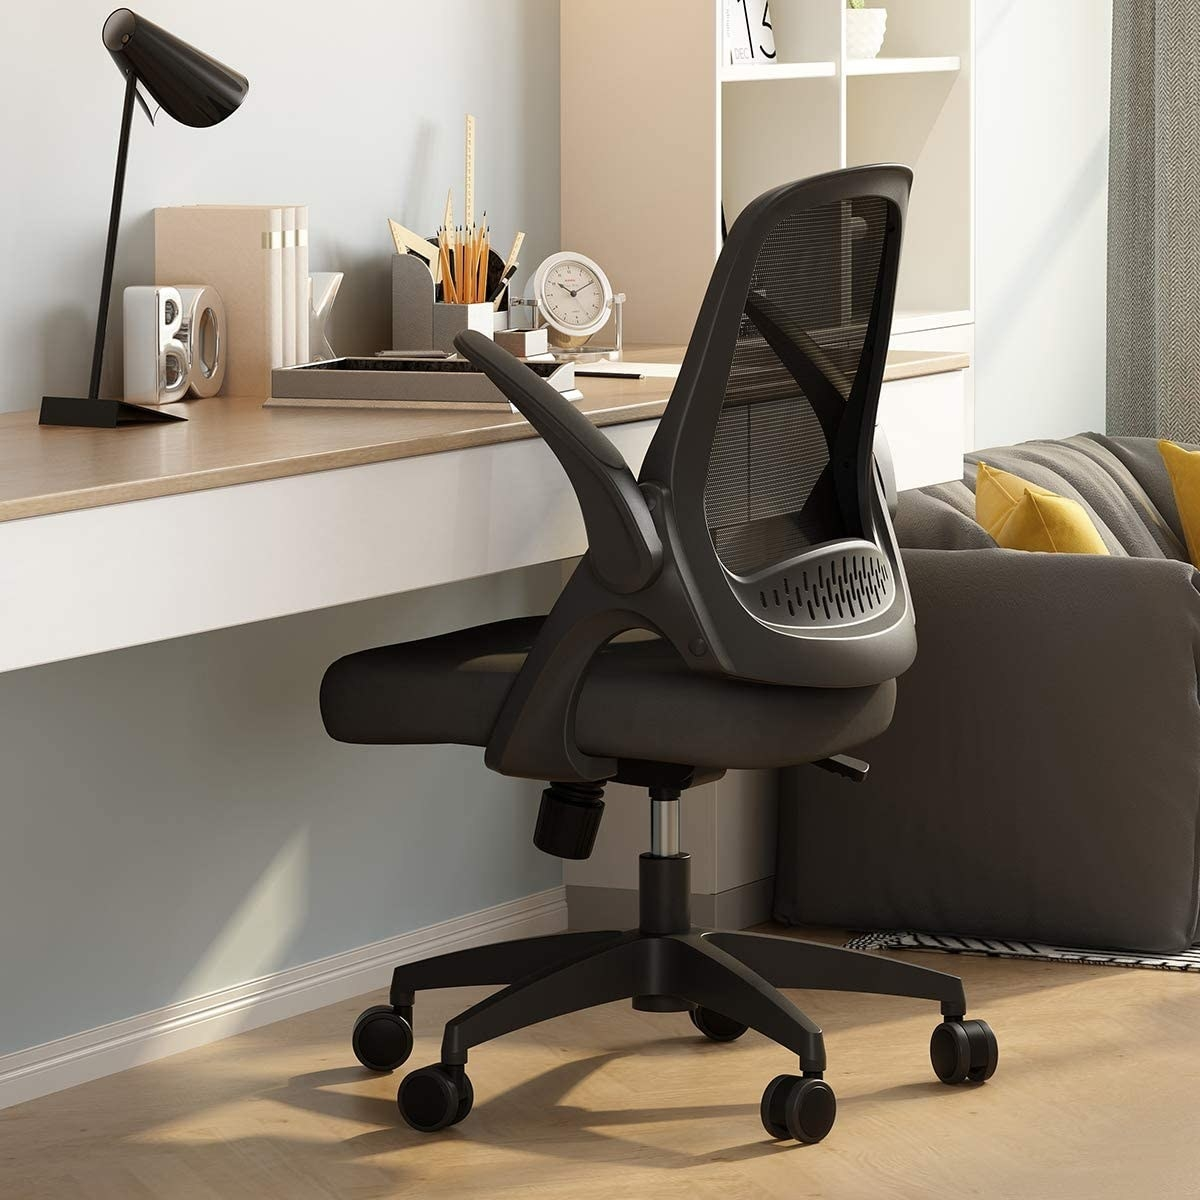 The black desk chair